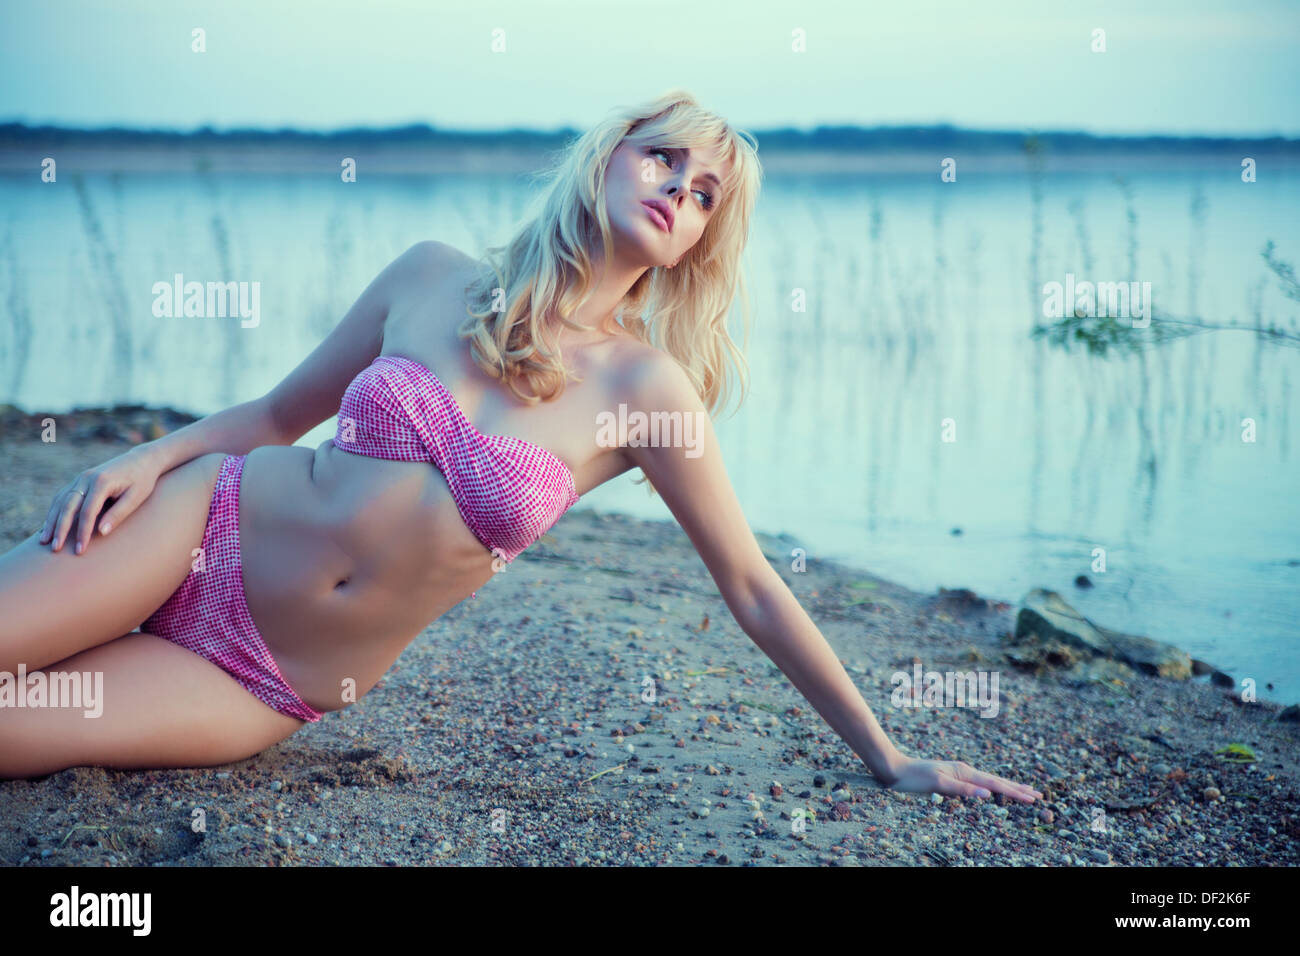 Portrait of blonde lady resting on the beach - Stock Image